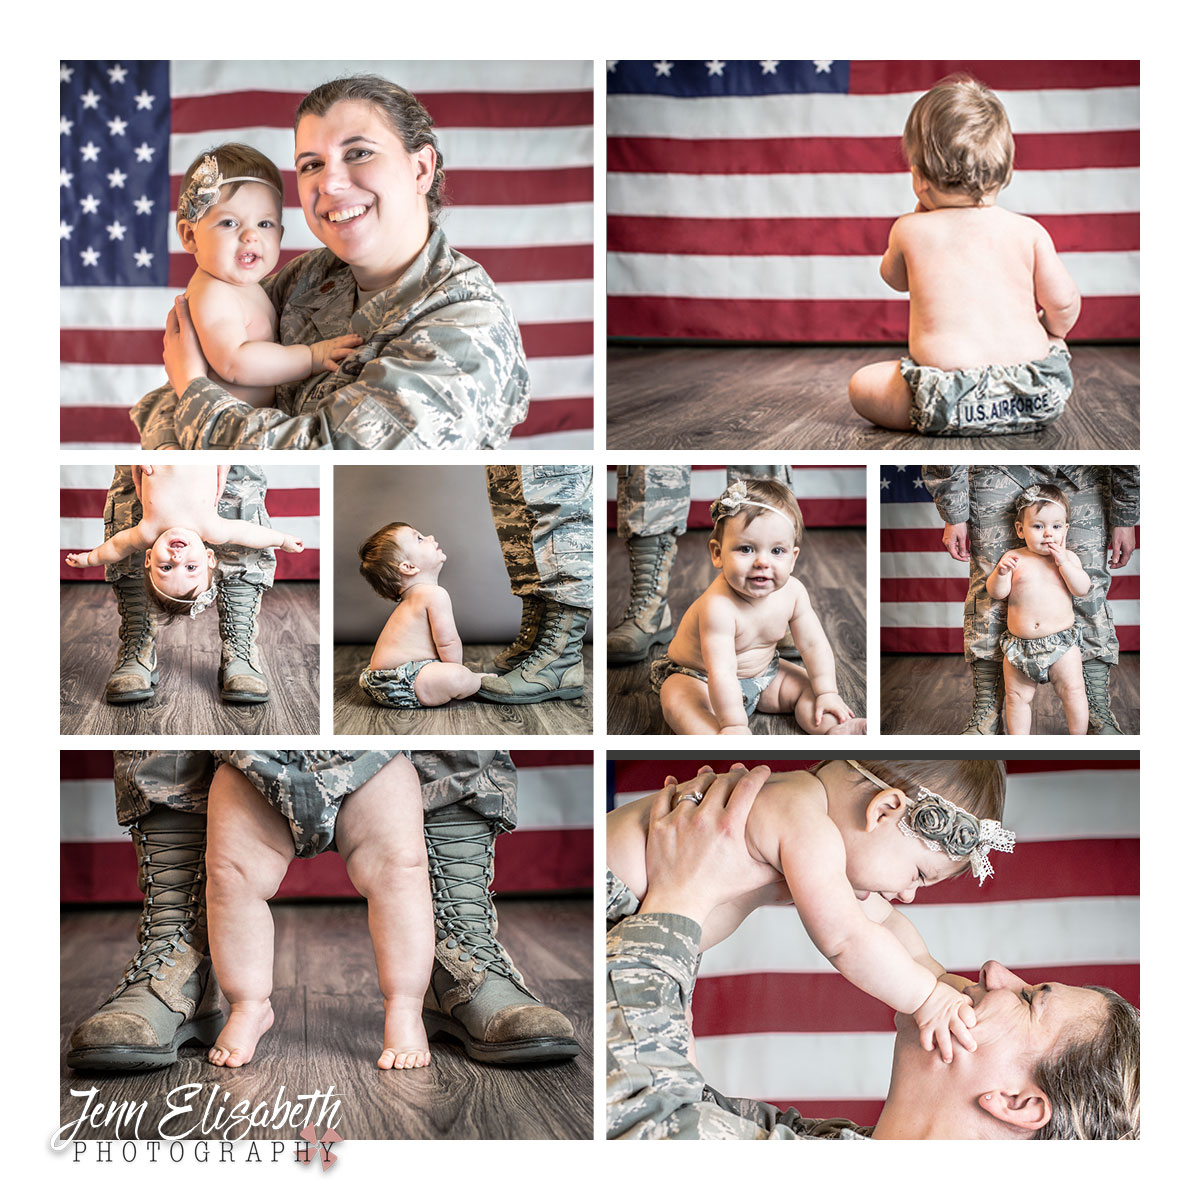 jenn-elisabeth-photography-air-force-mom